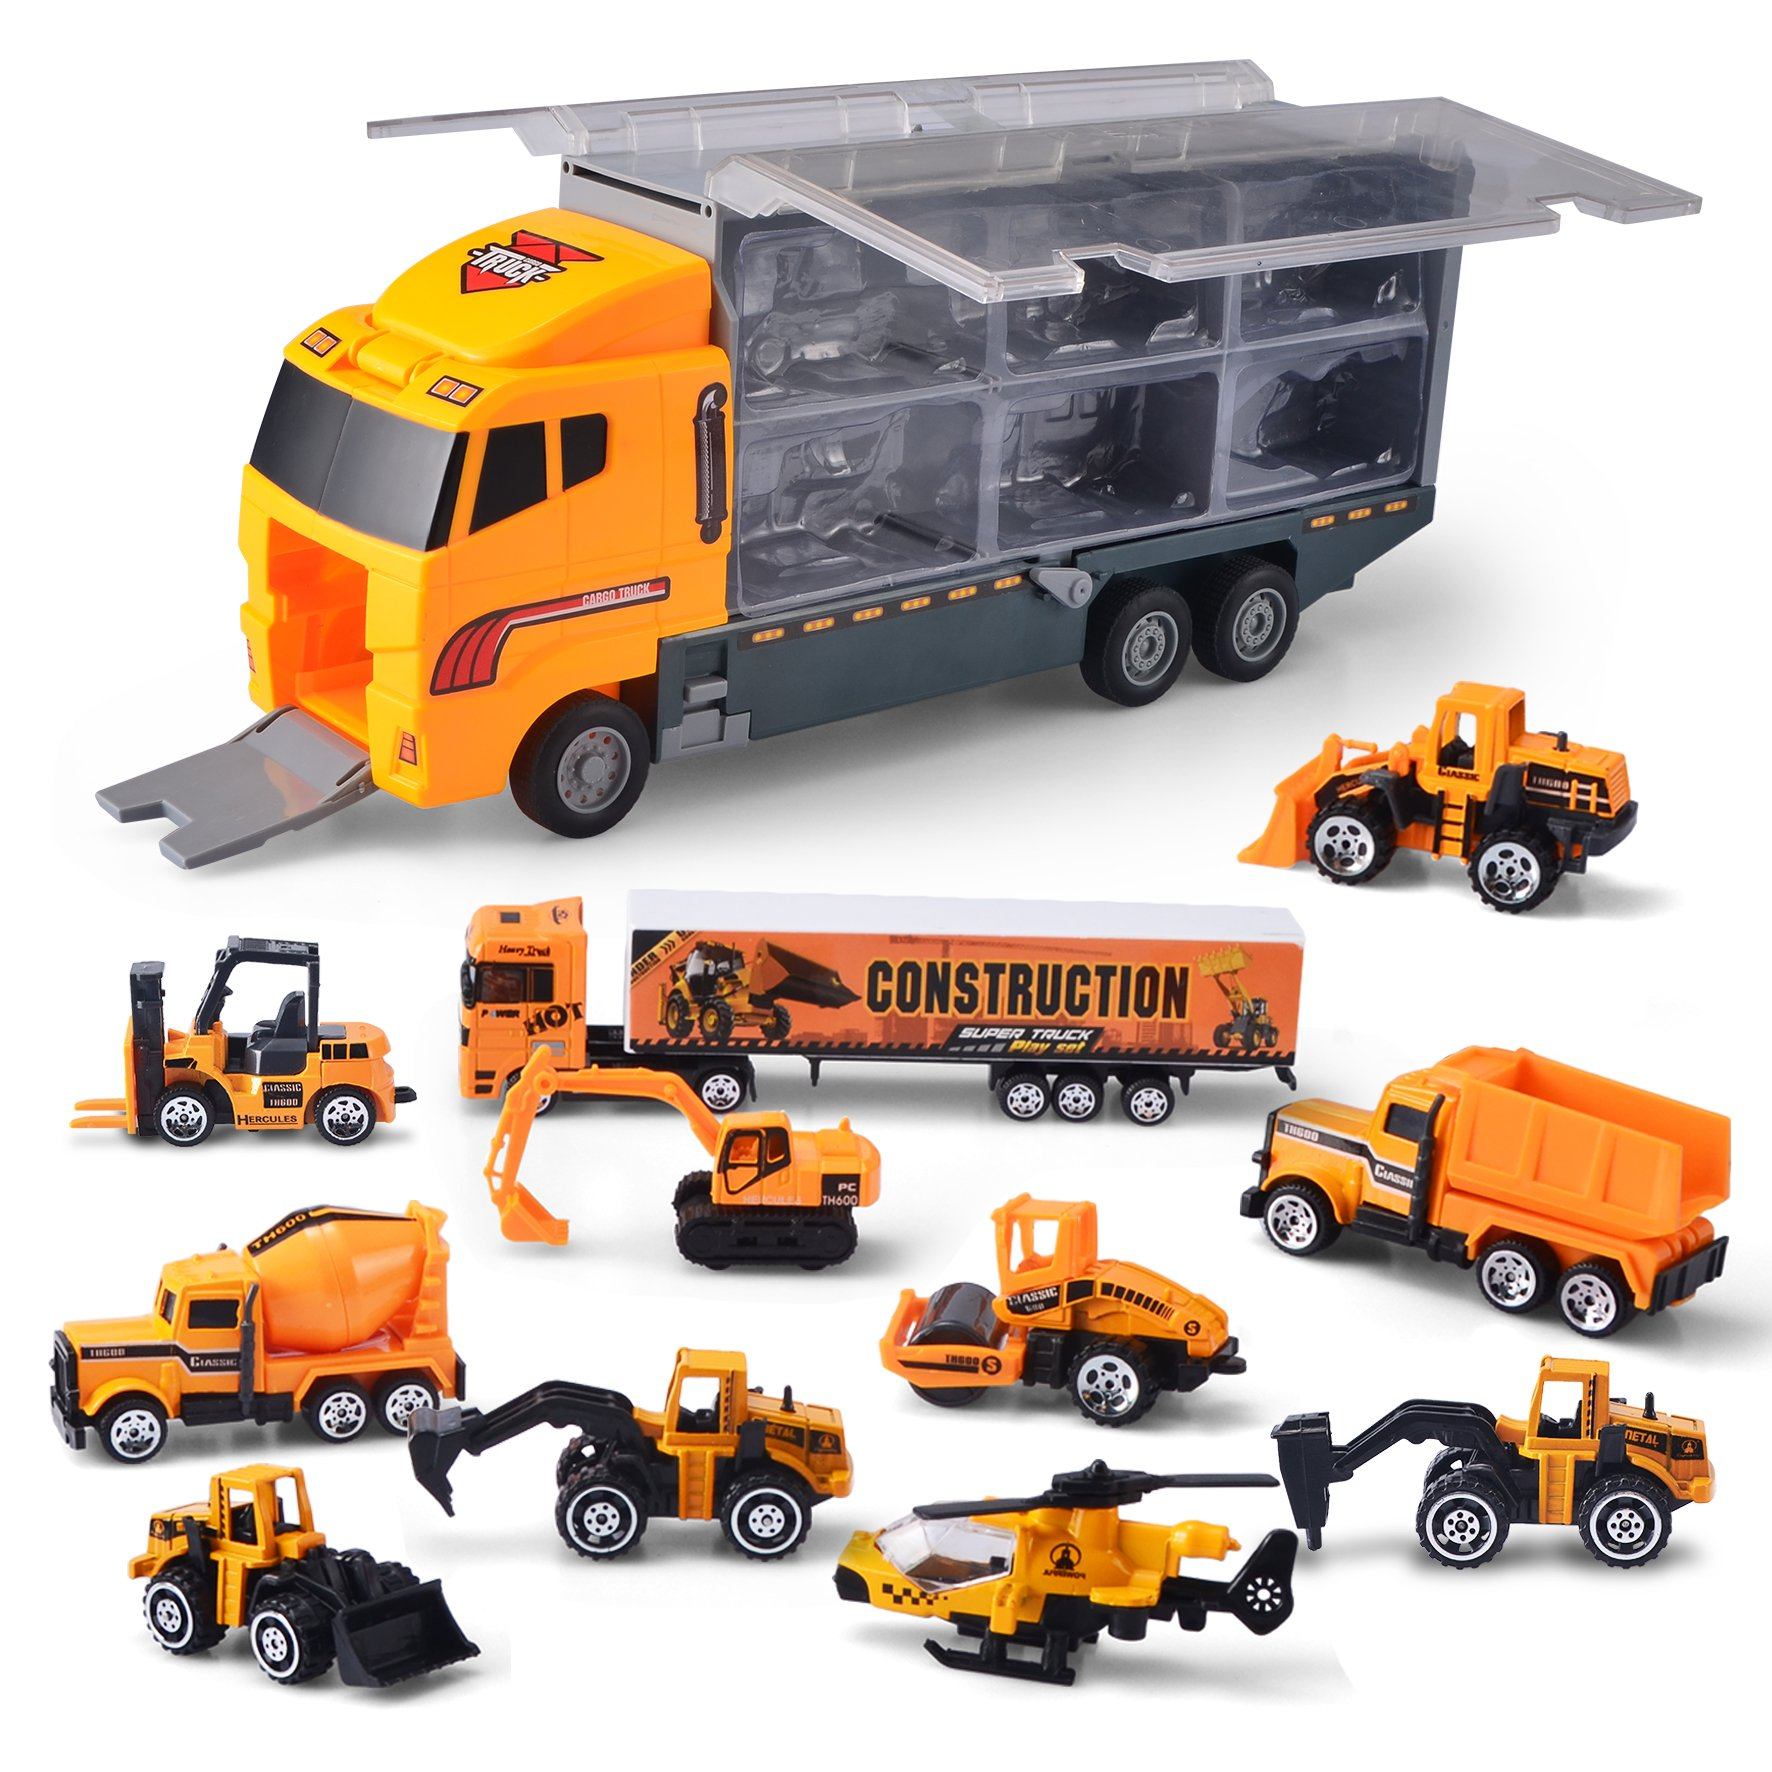 JOYIN 11 in 1 Die-cast Construction Truck Vehicle Car Toy Set Play Vehicles in Carrier Truck by JOYIN